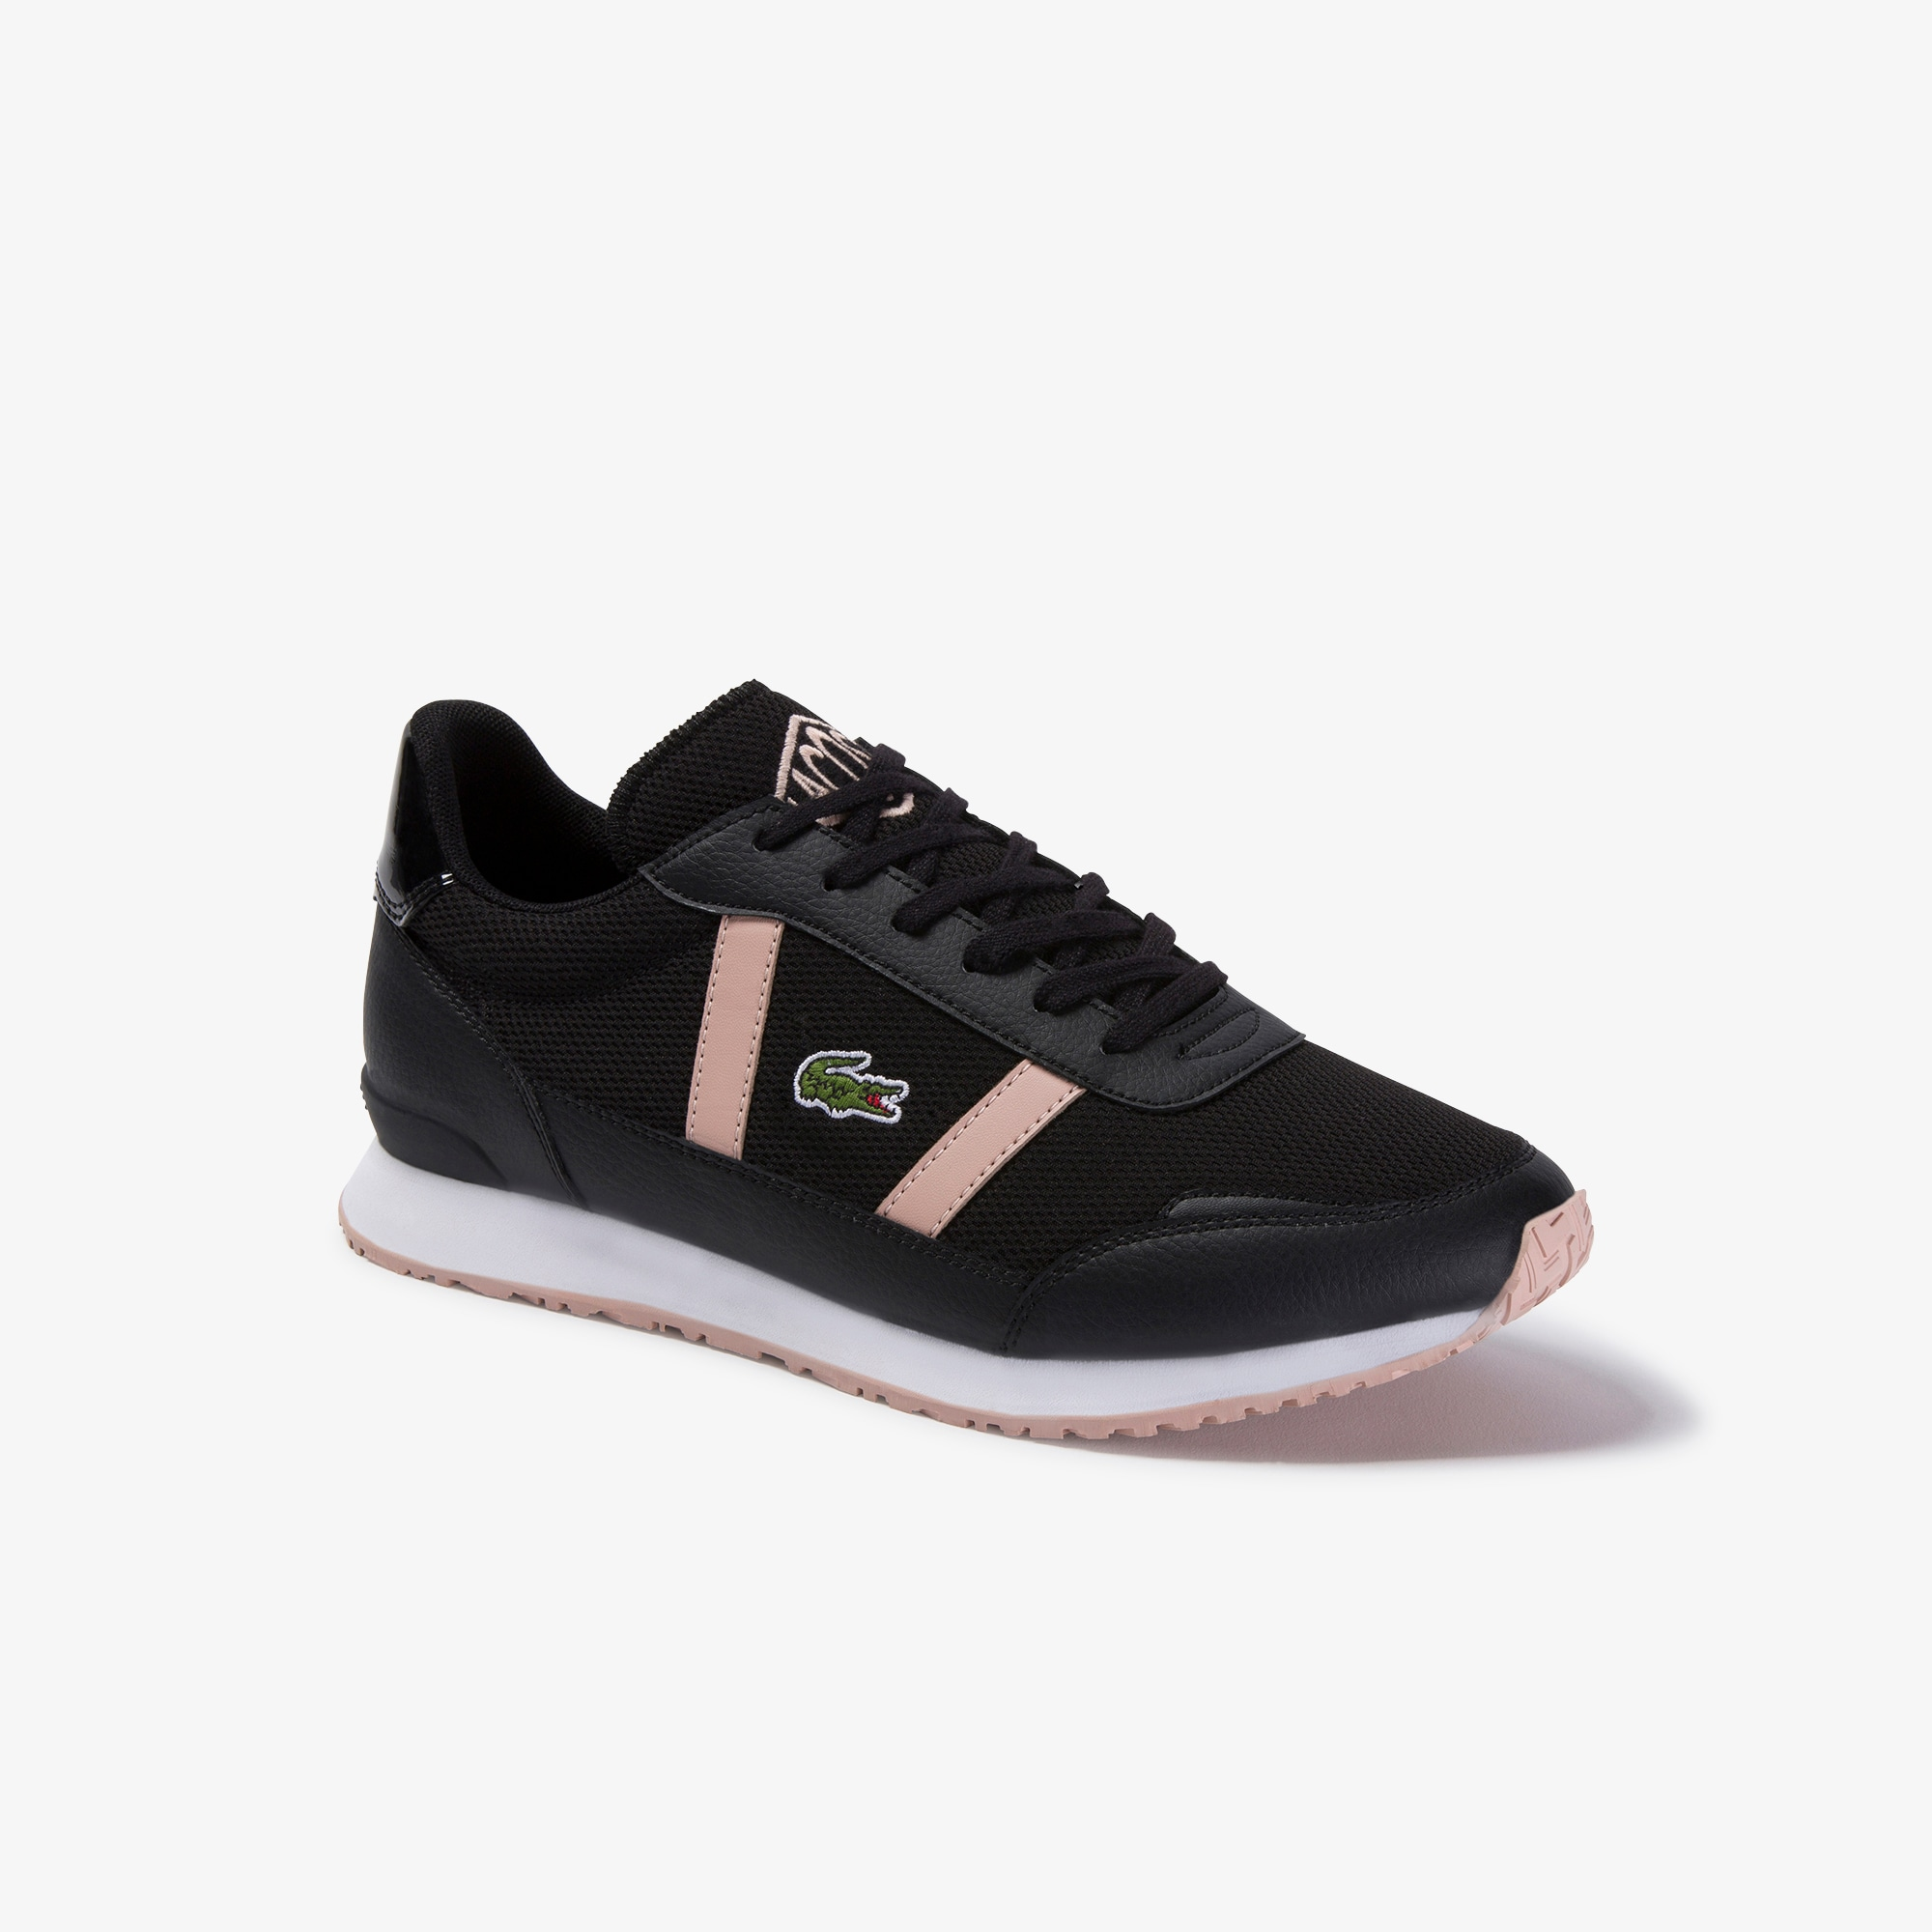 Sneakers da donna in tessuto e materiale sintetico Partner